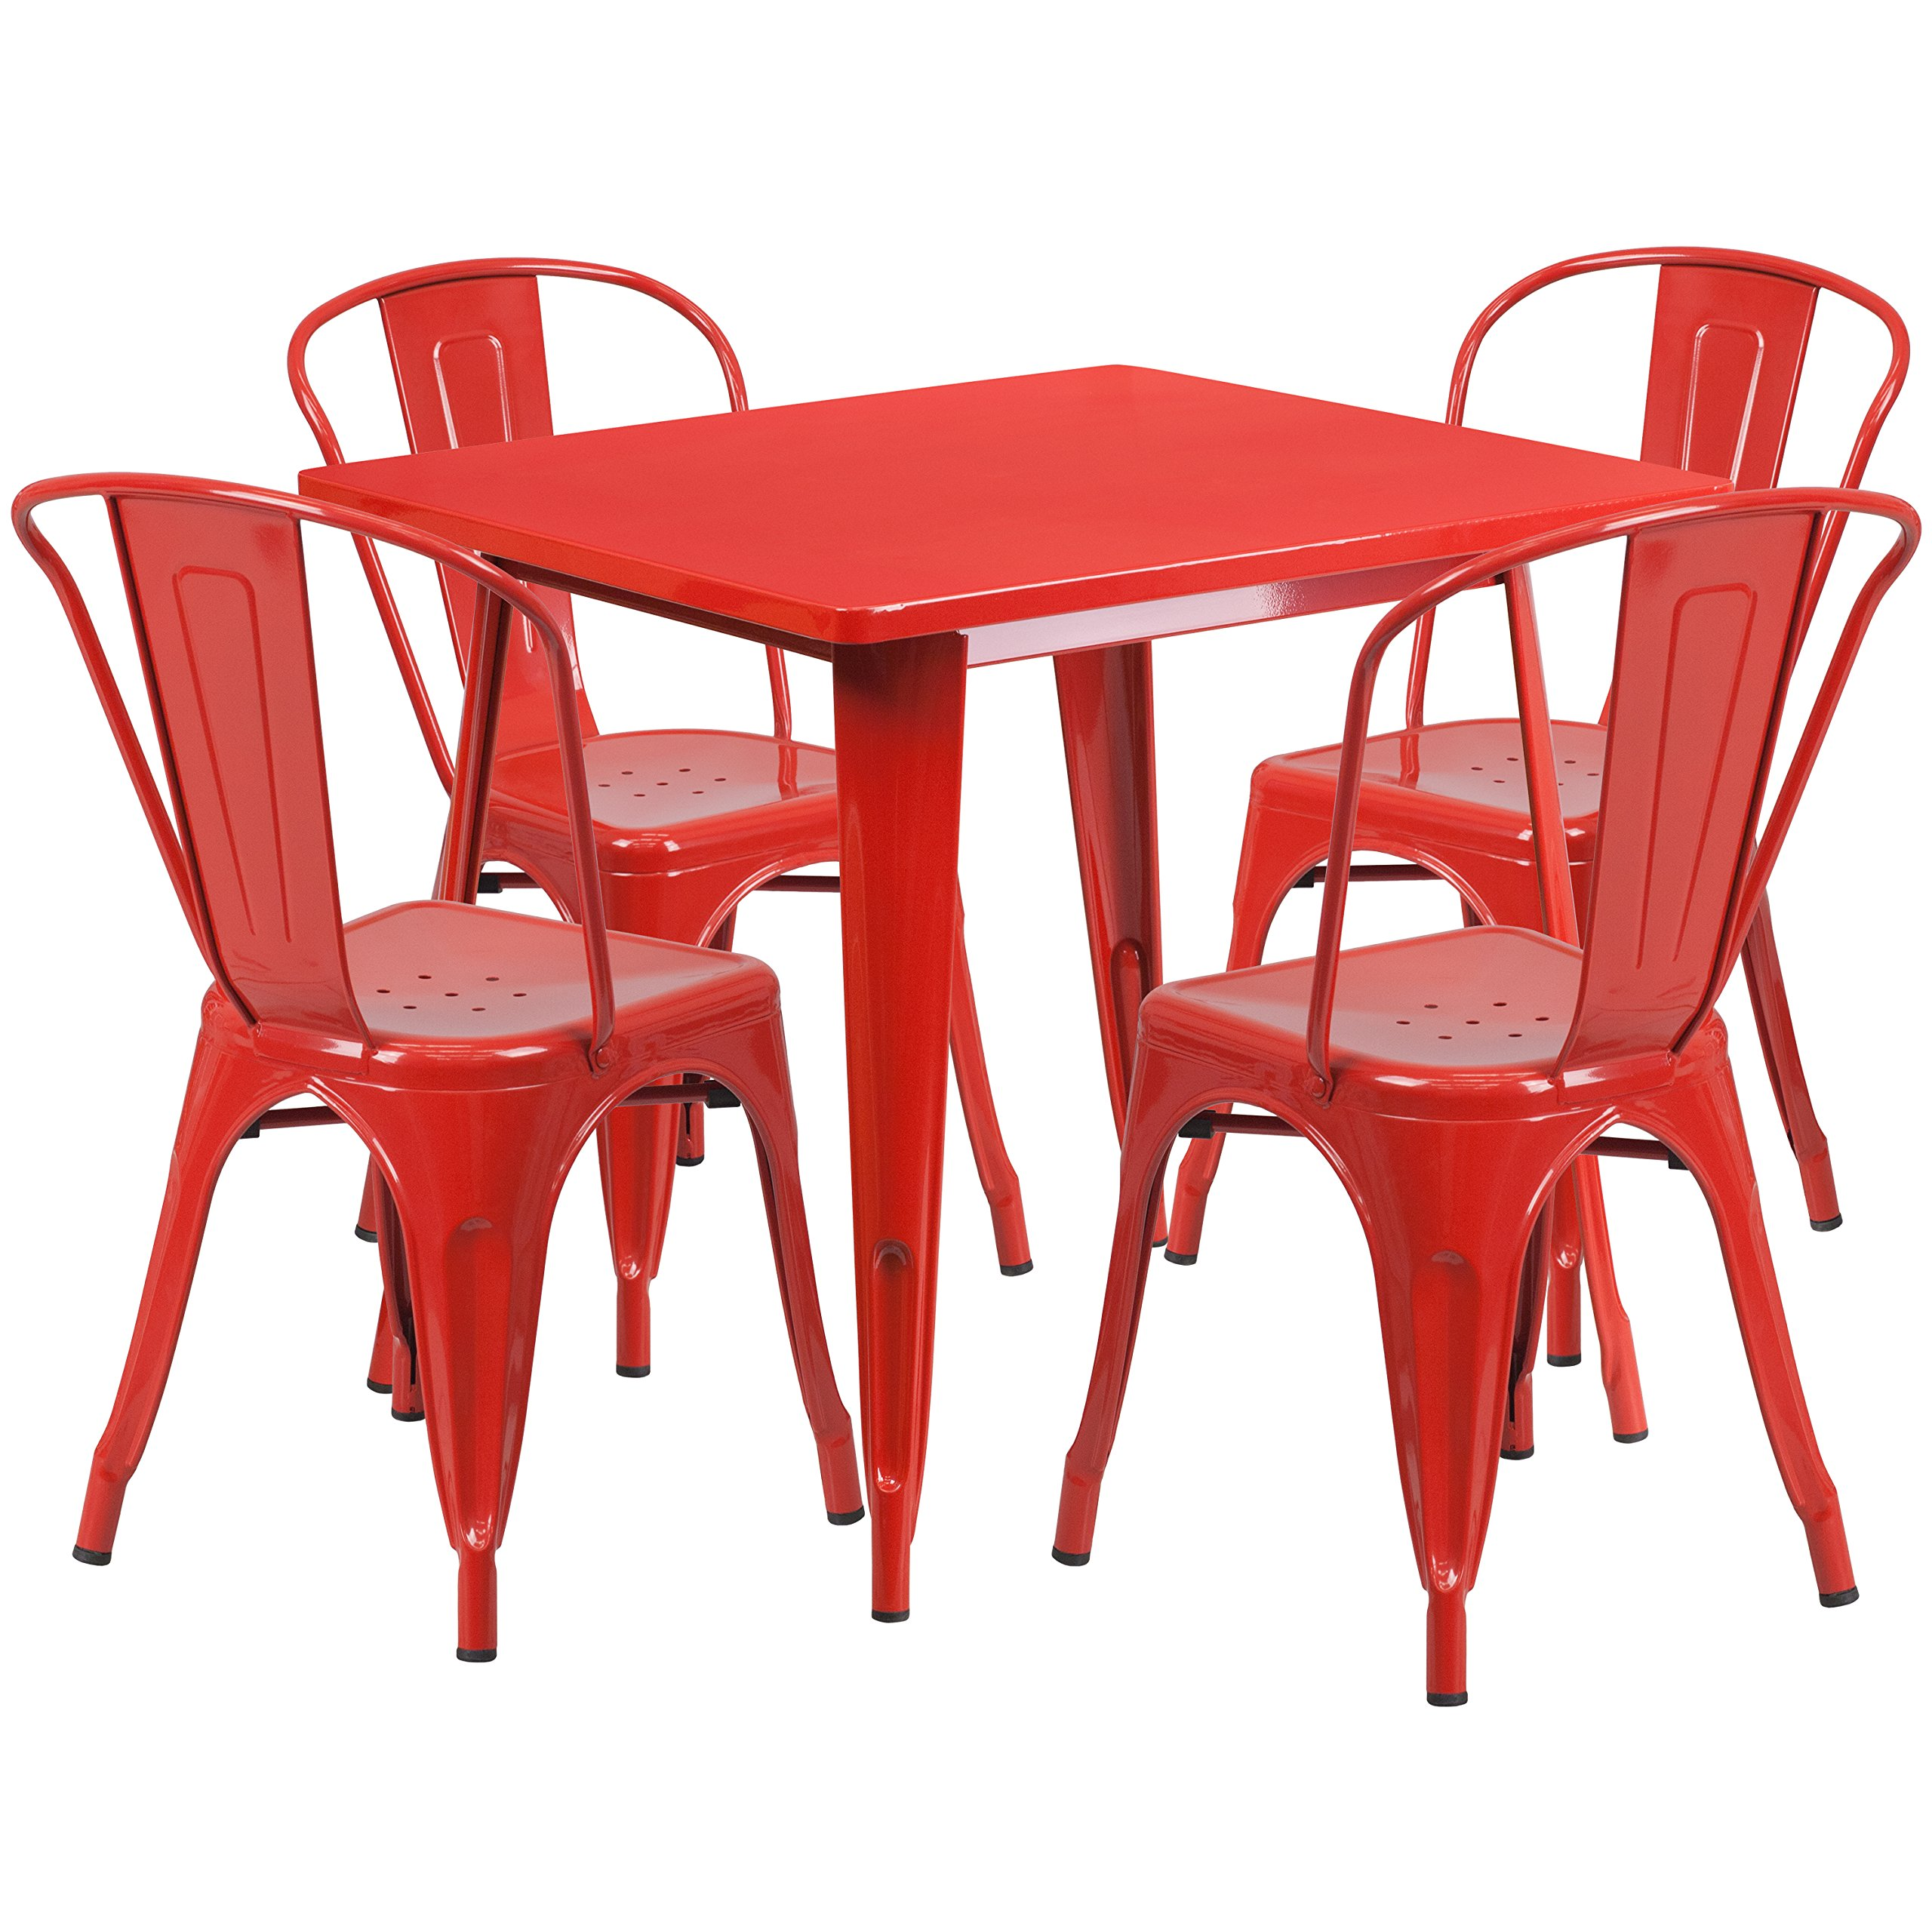 Flash Furniture 31.5'' Square Red Metal Indoor-Outdoor Table Set with 4 Stack Chairs by Flash Furniture